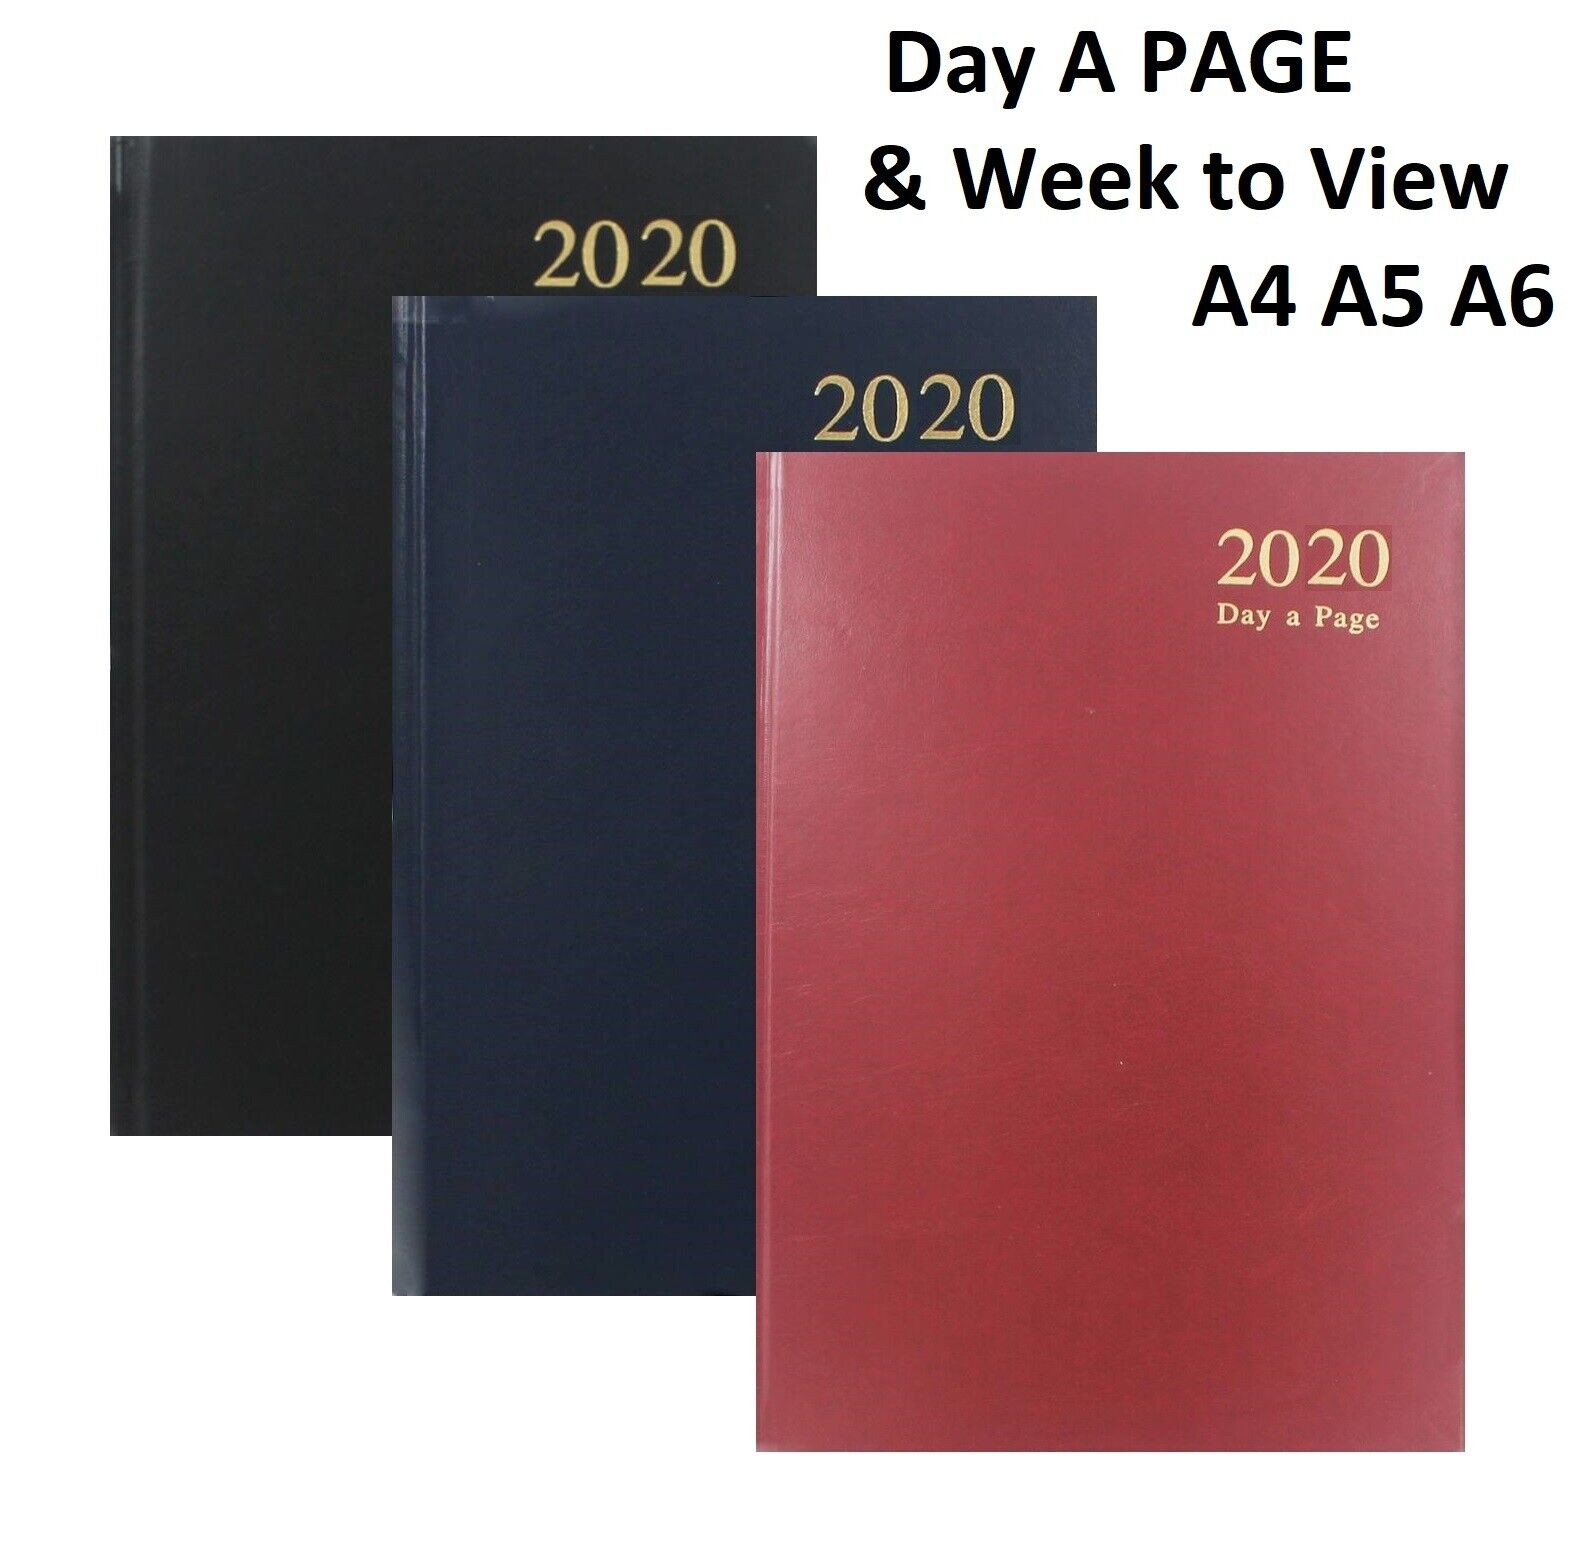 2019 A4 & A5 DAY PER PAGE WEEK TO VIEW HARD BACK DESK CALENDAR YEAR DIARY Office Equipment & Supplies Office Supplies & Stationery